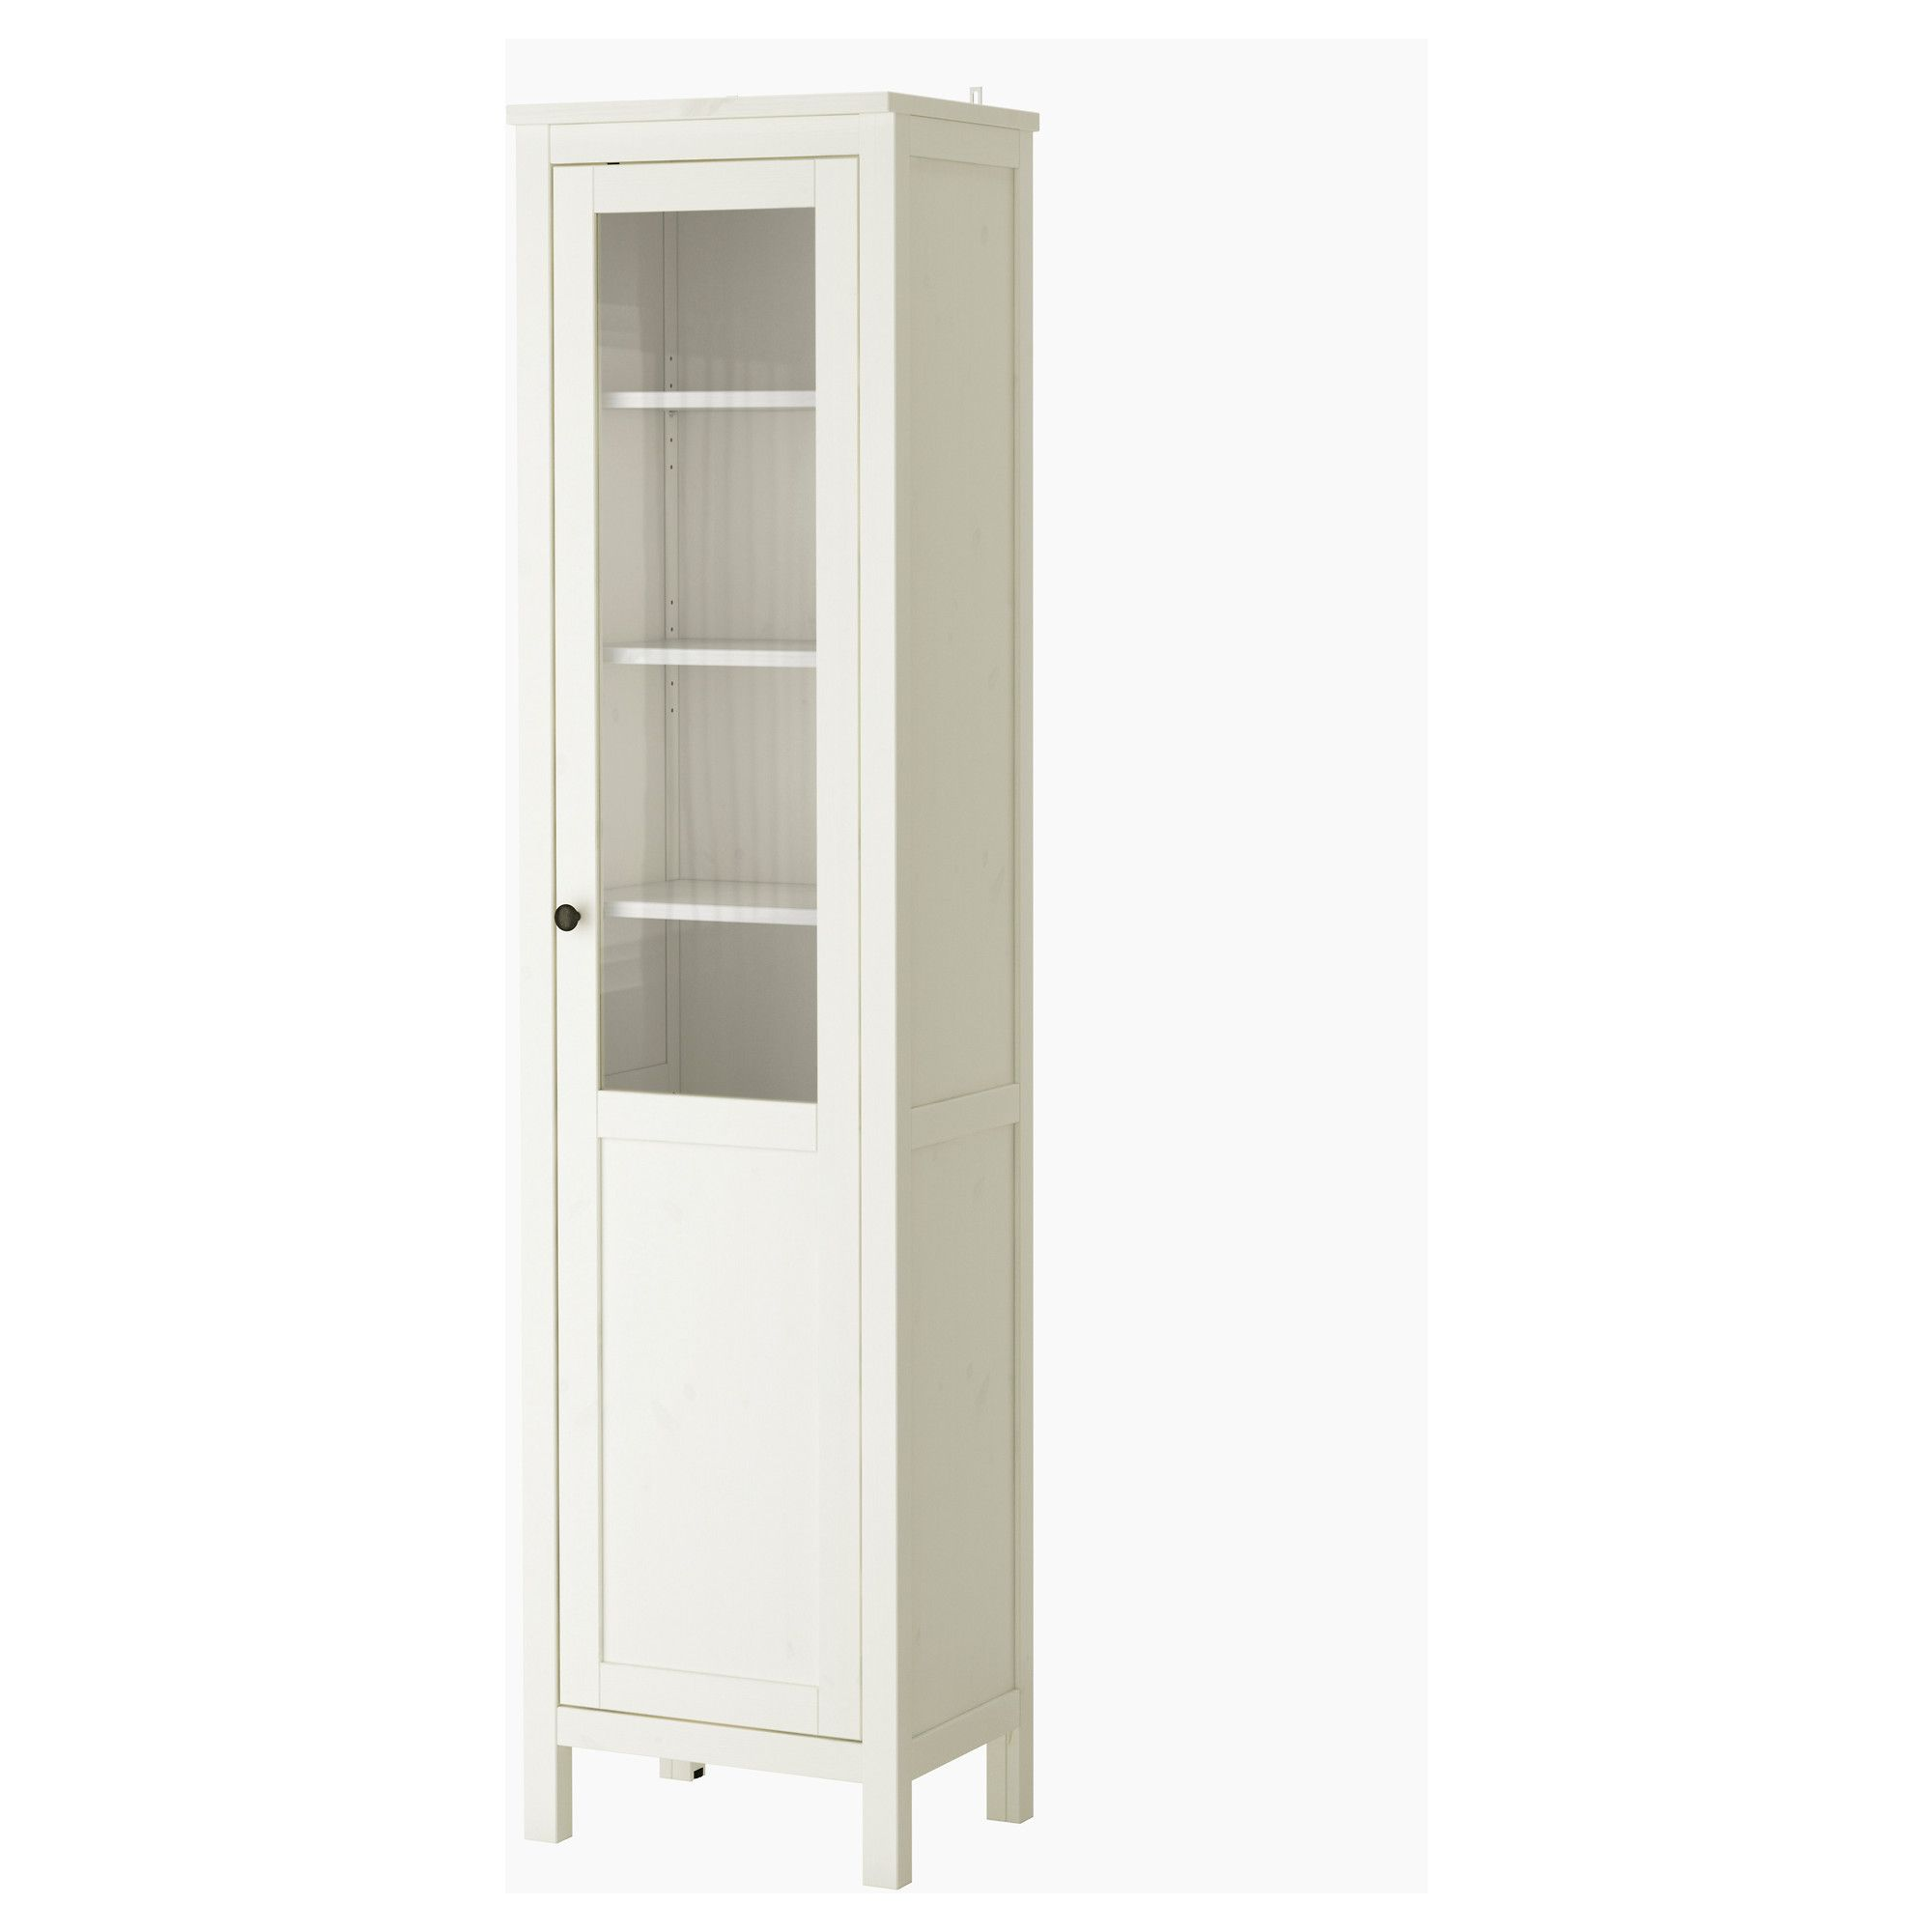 hemnes cabinet with panel/glass door - white stain - ikea